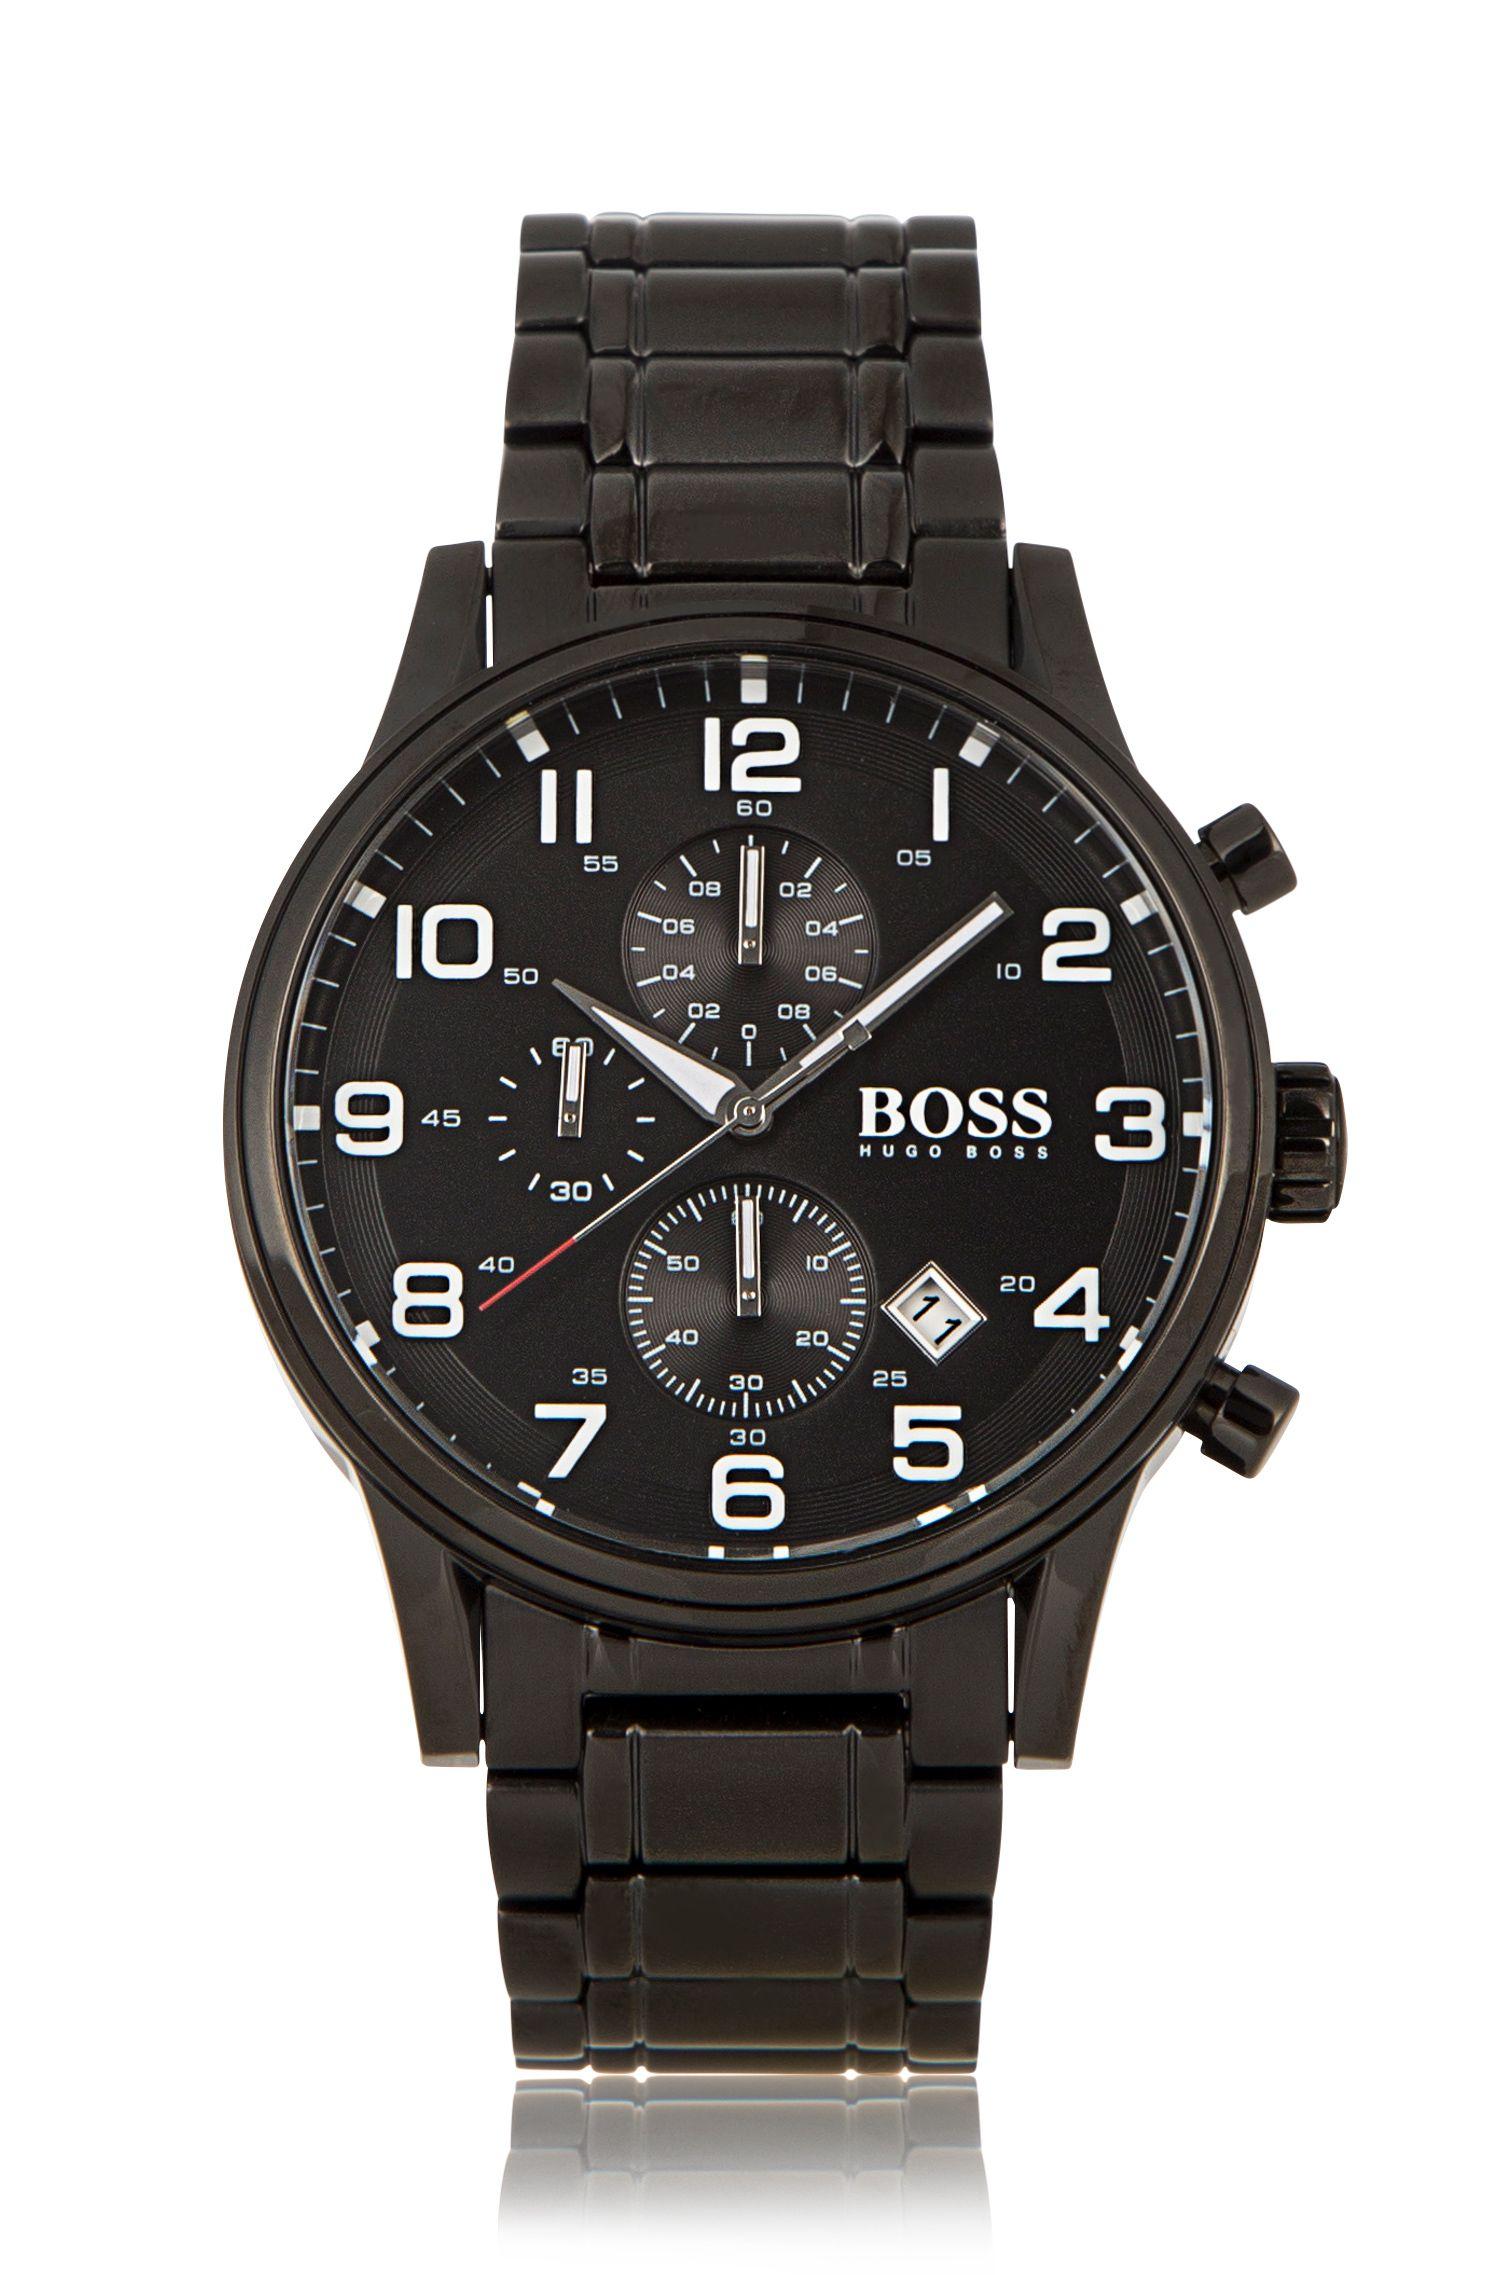 Chronograph 'HBAERIR' with a black stainless-steel casing